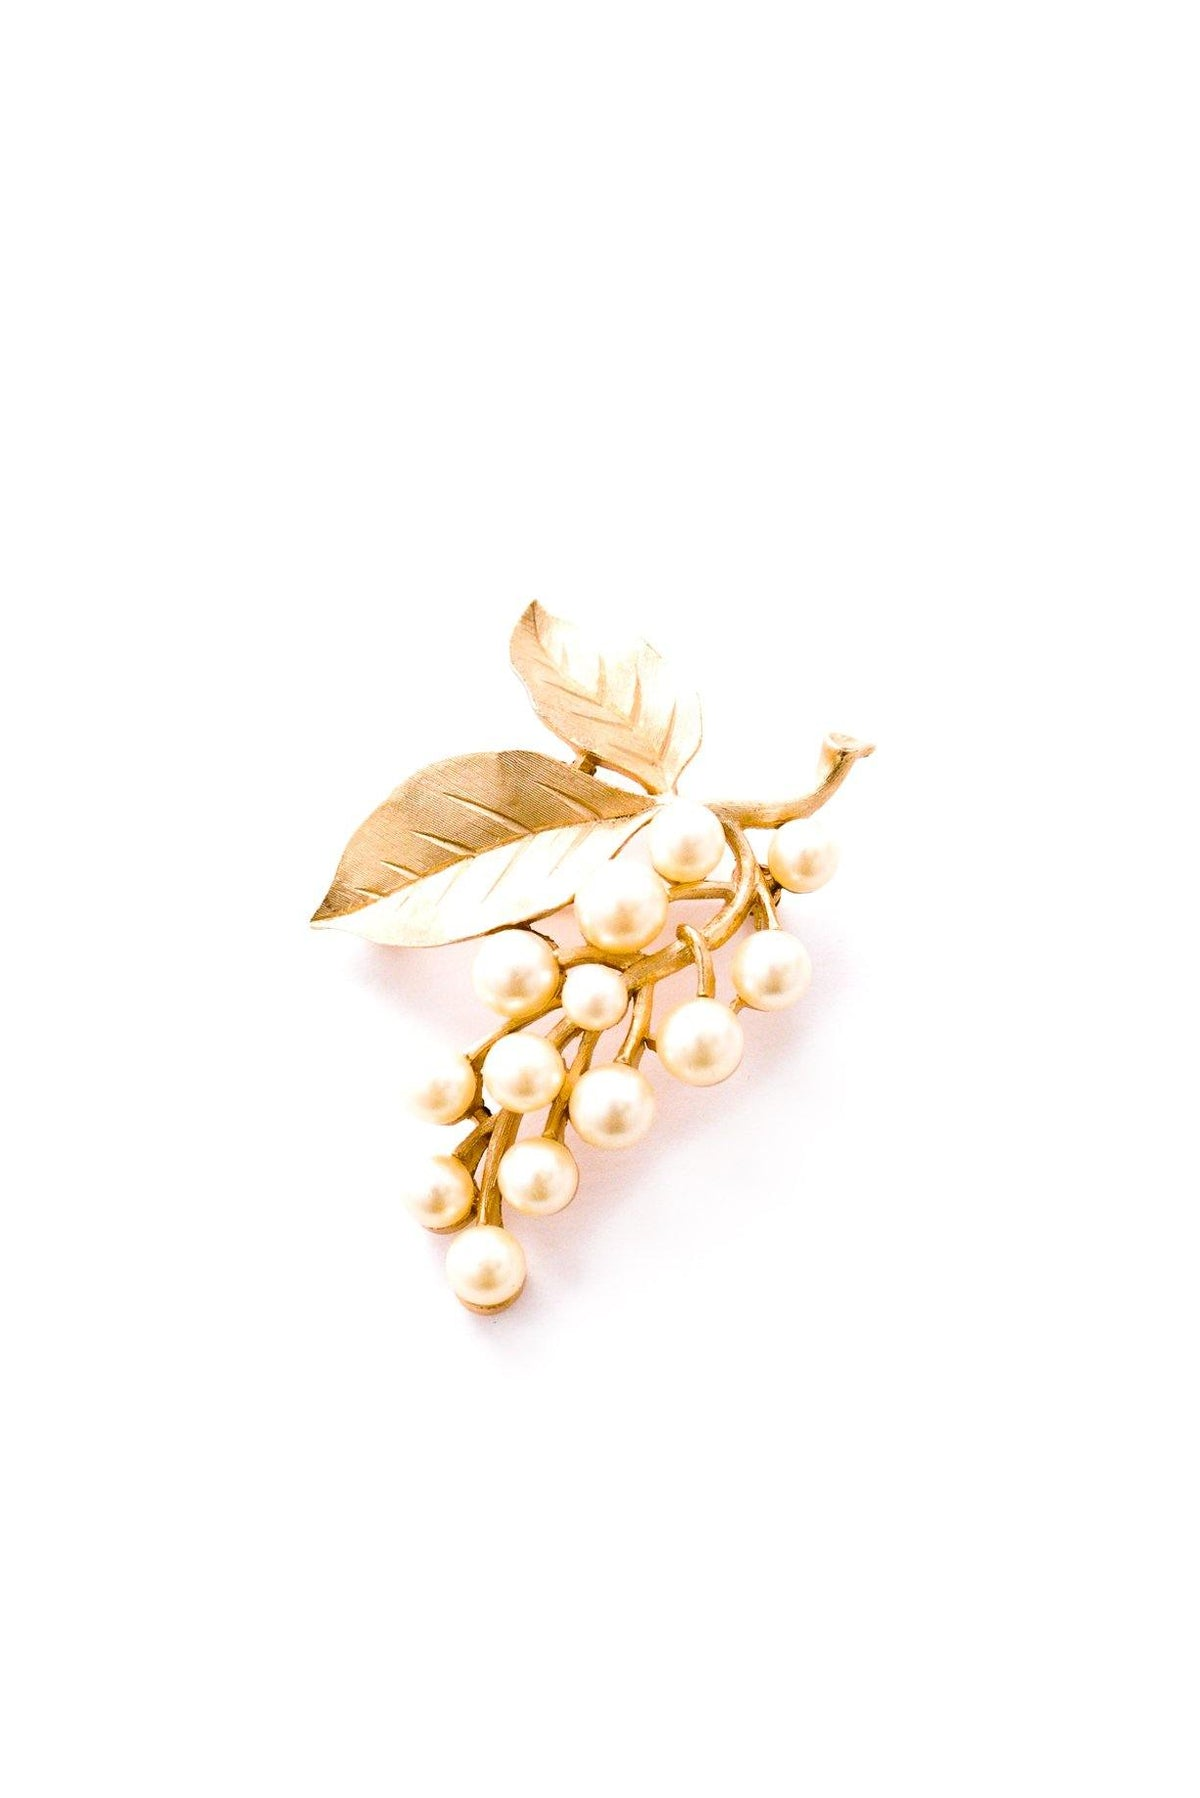 Vintage Gold Pearl Branch Brooch from Sweet & Spark